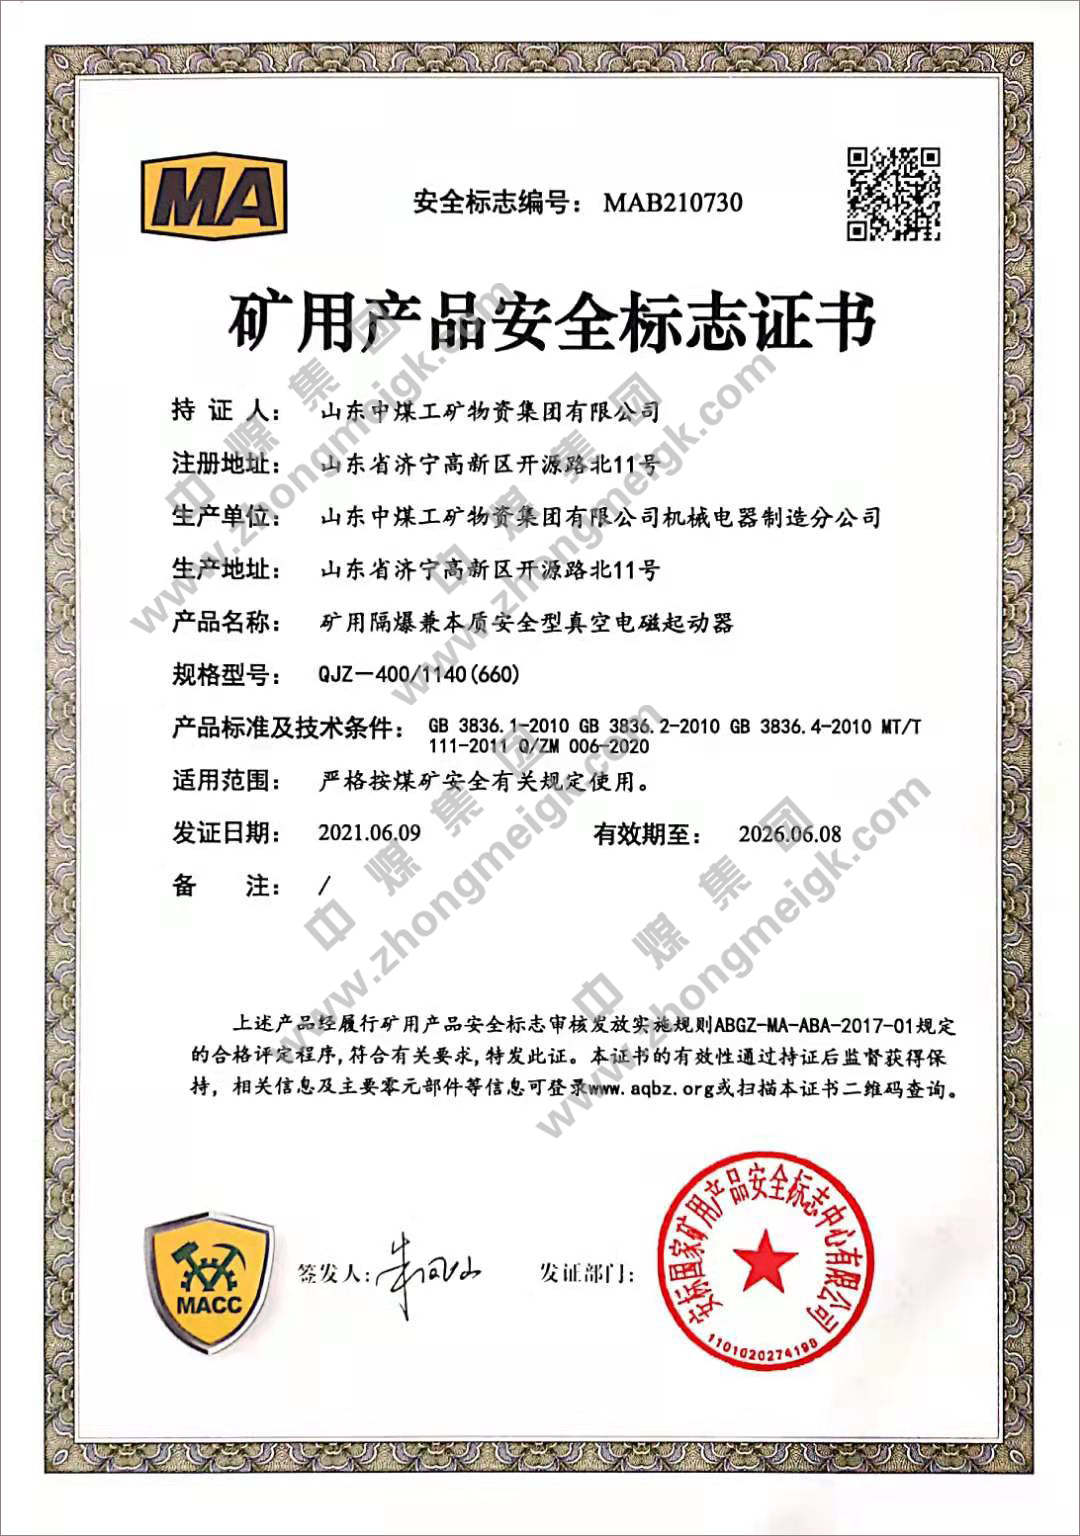 Congratulations To China Coal Group For Adding 7 New National Mining Product Safety Mark Certificates